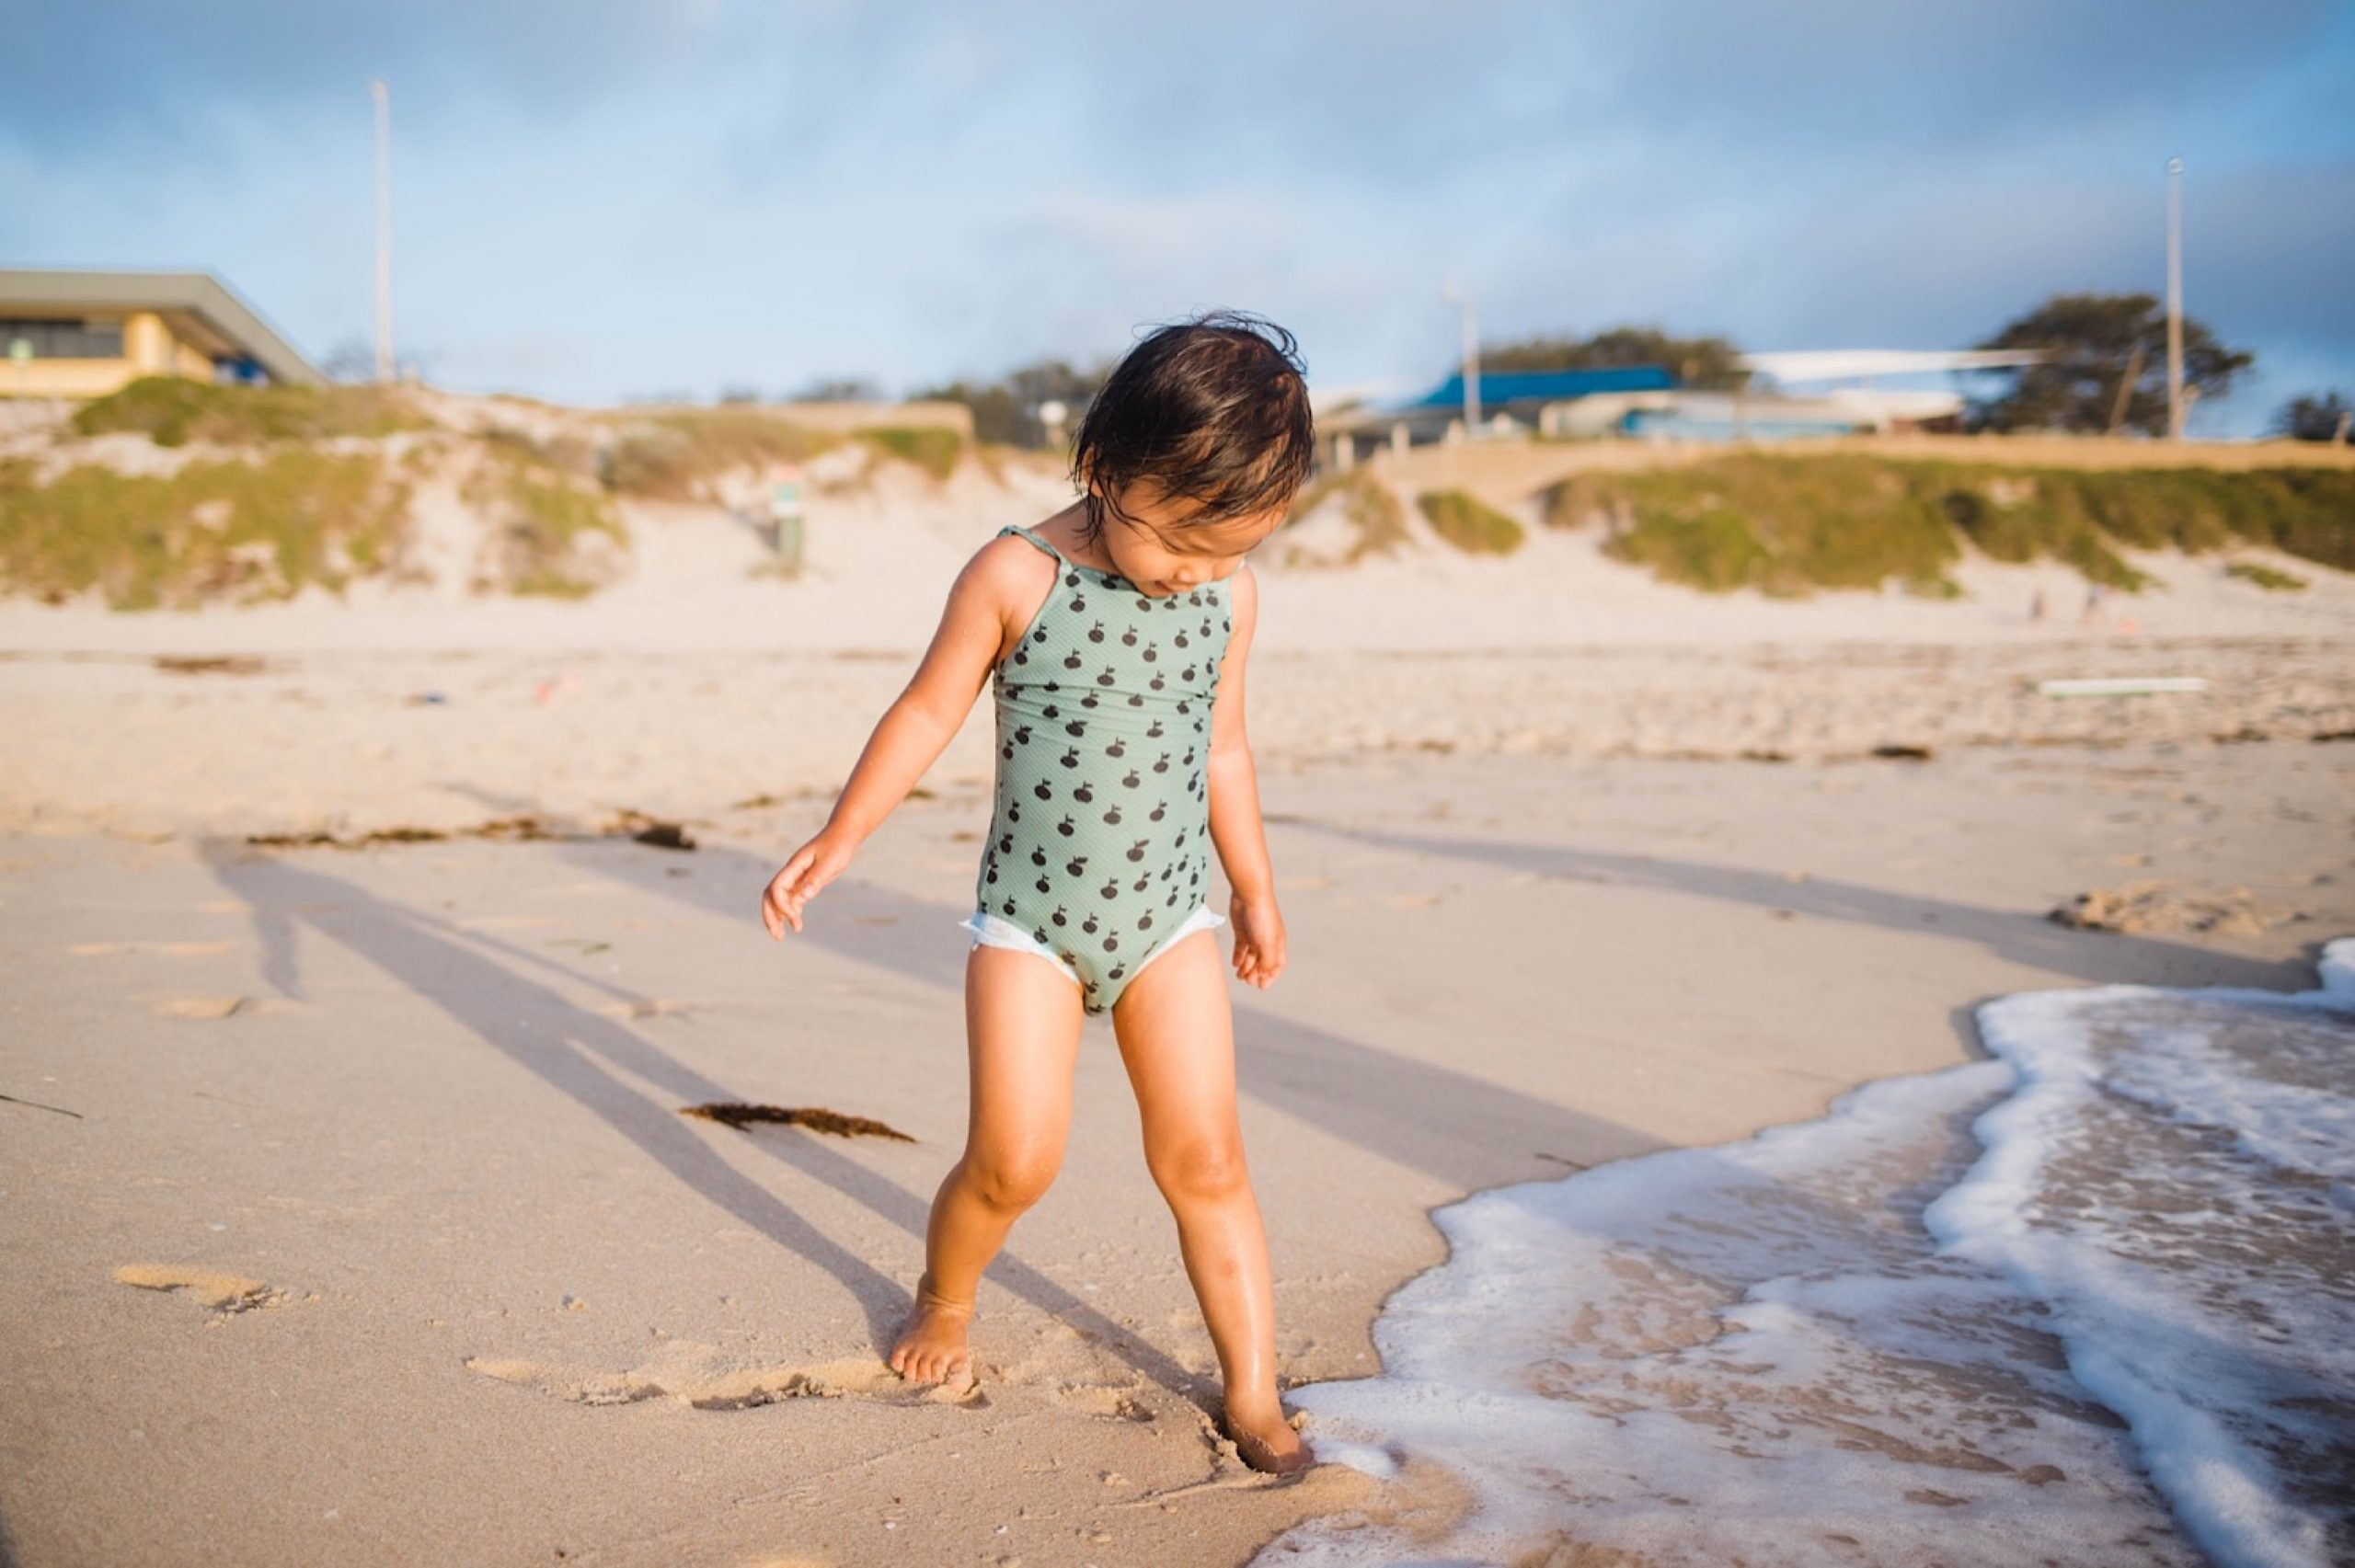 A little girl sticks her feet just into the edge of the ocean, with the sand dunes behind her.